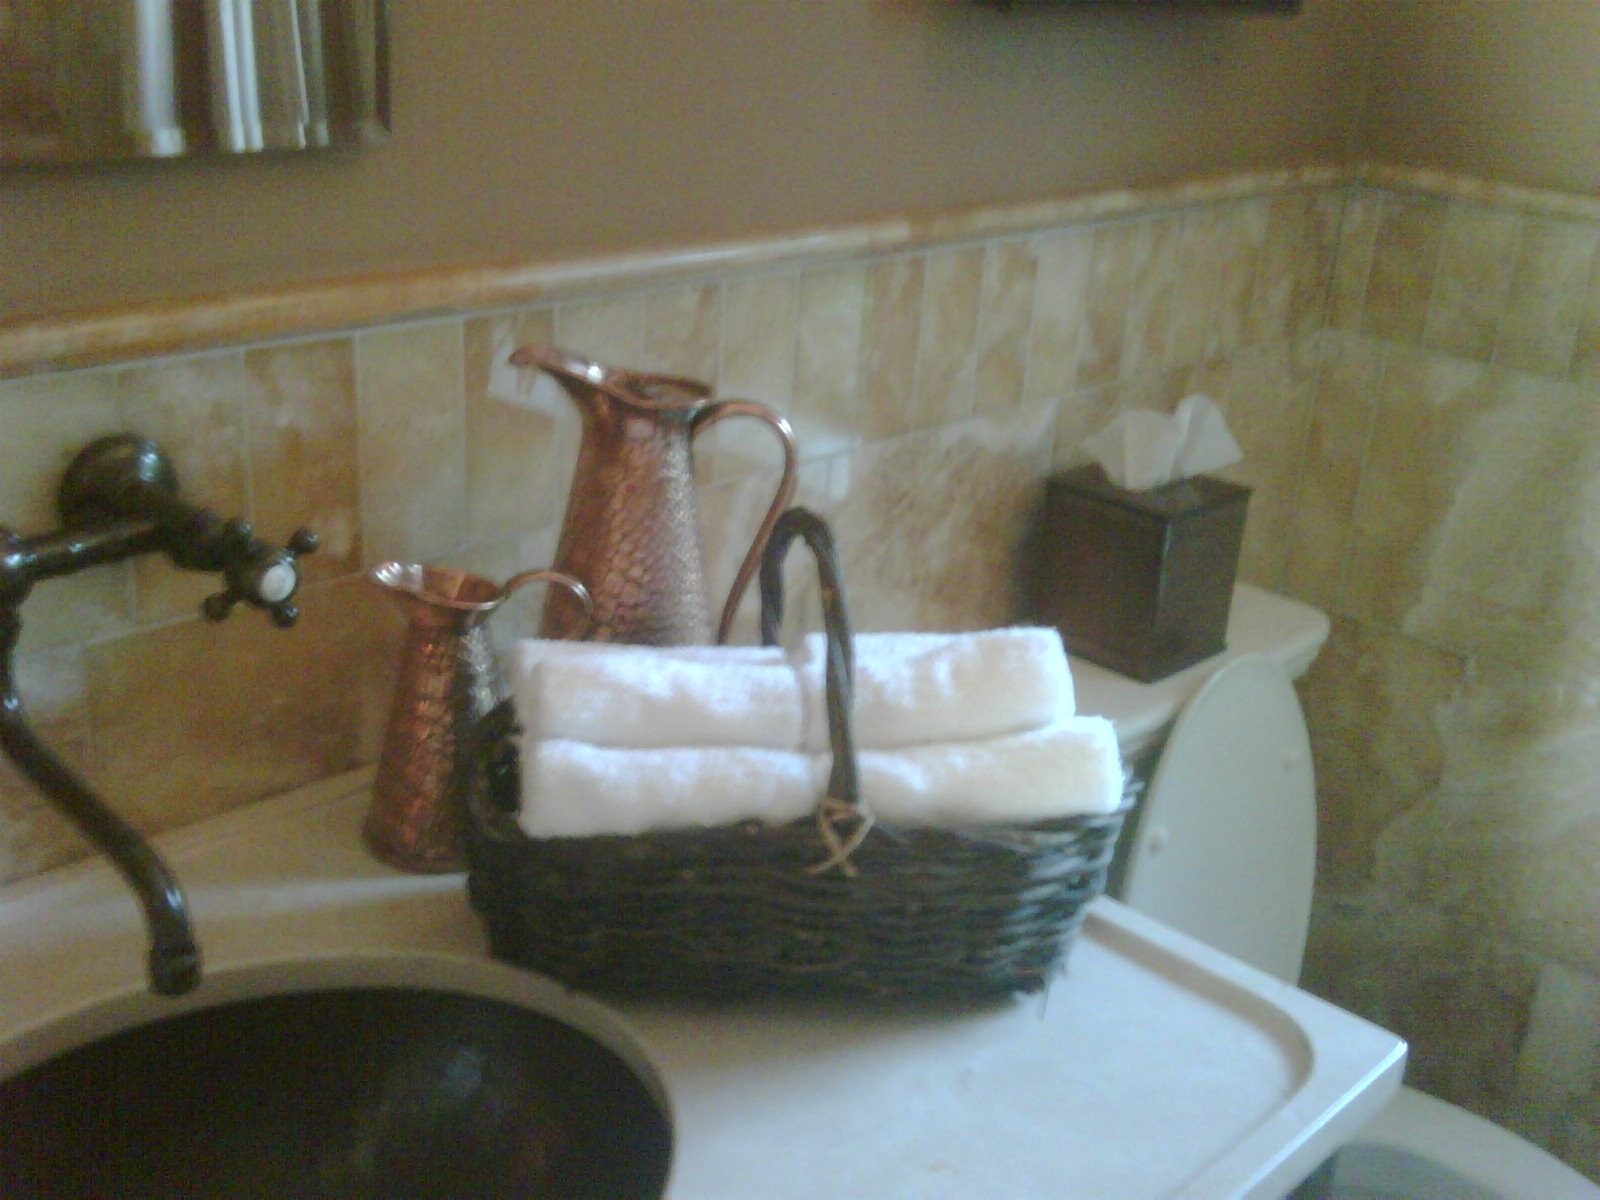 Bathroom Napkins guest bathroom napkins alternative! | letia mitchell lifestyle